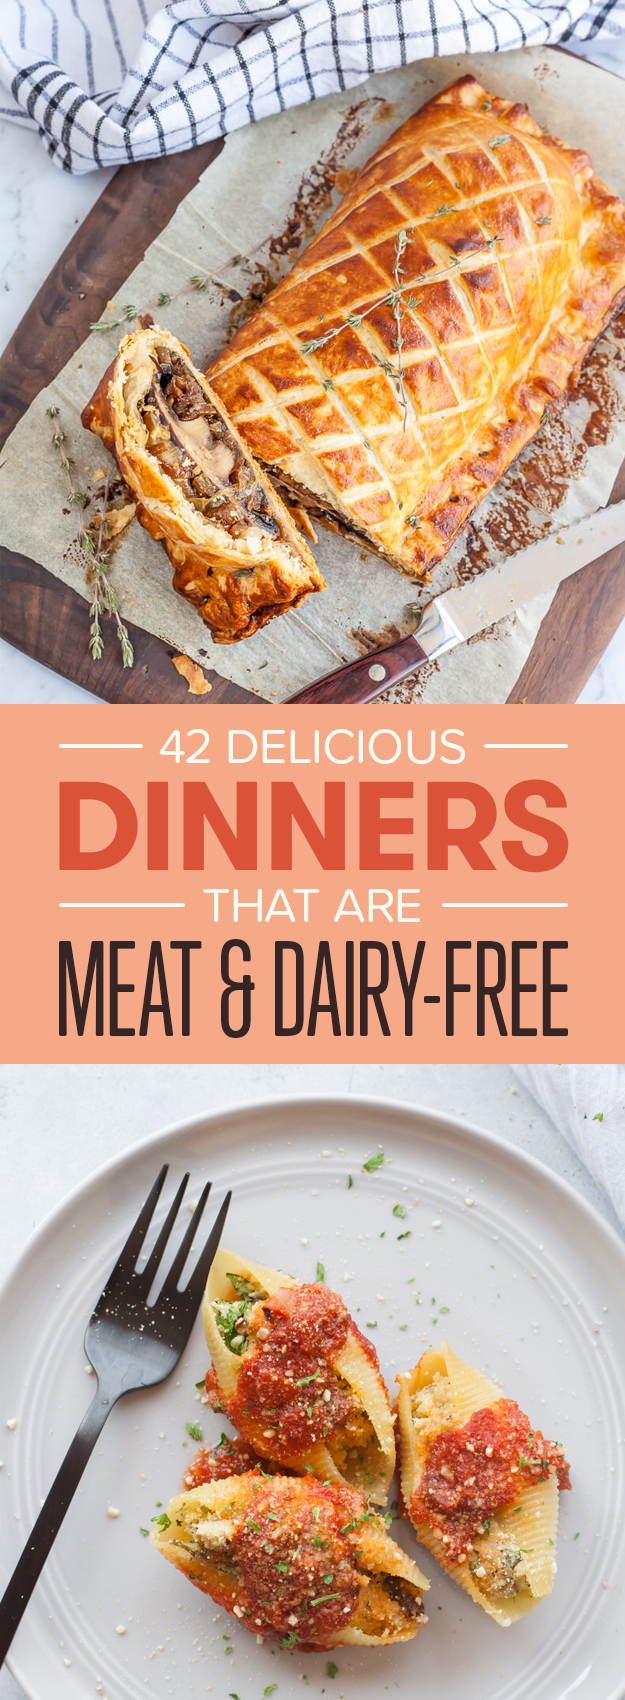 42 dinner ideas if you u0027re trying to cut back on meat or dairy